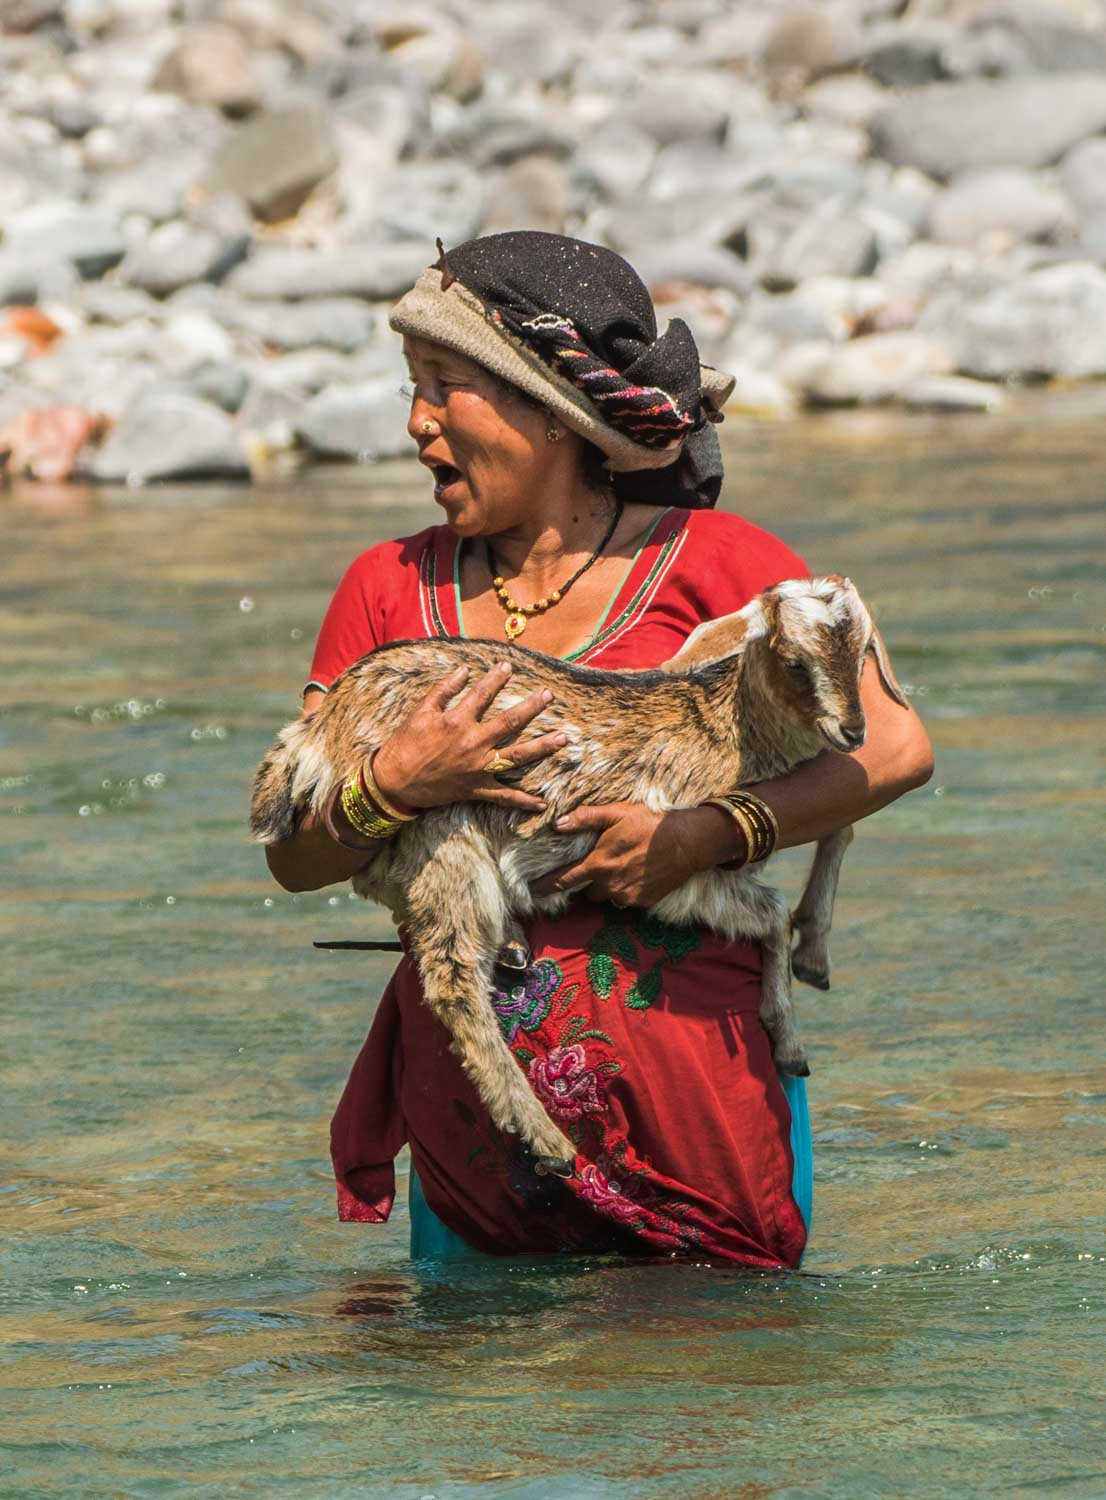 Woman carrying a goat crossing a river - WildWorldSafaris.com